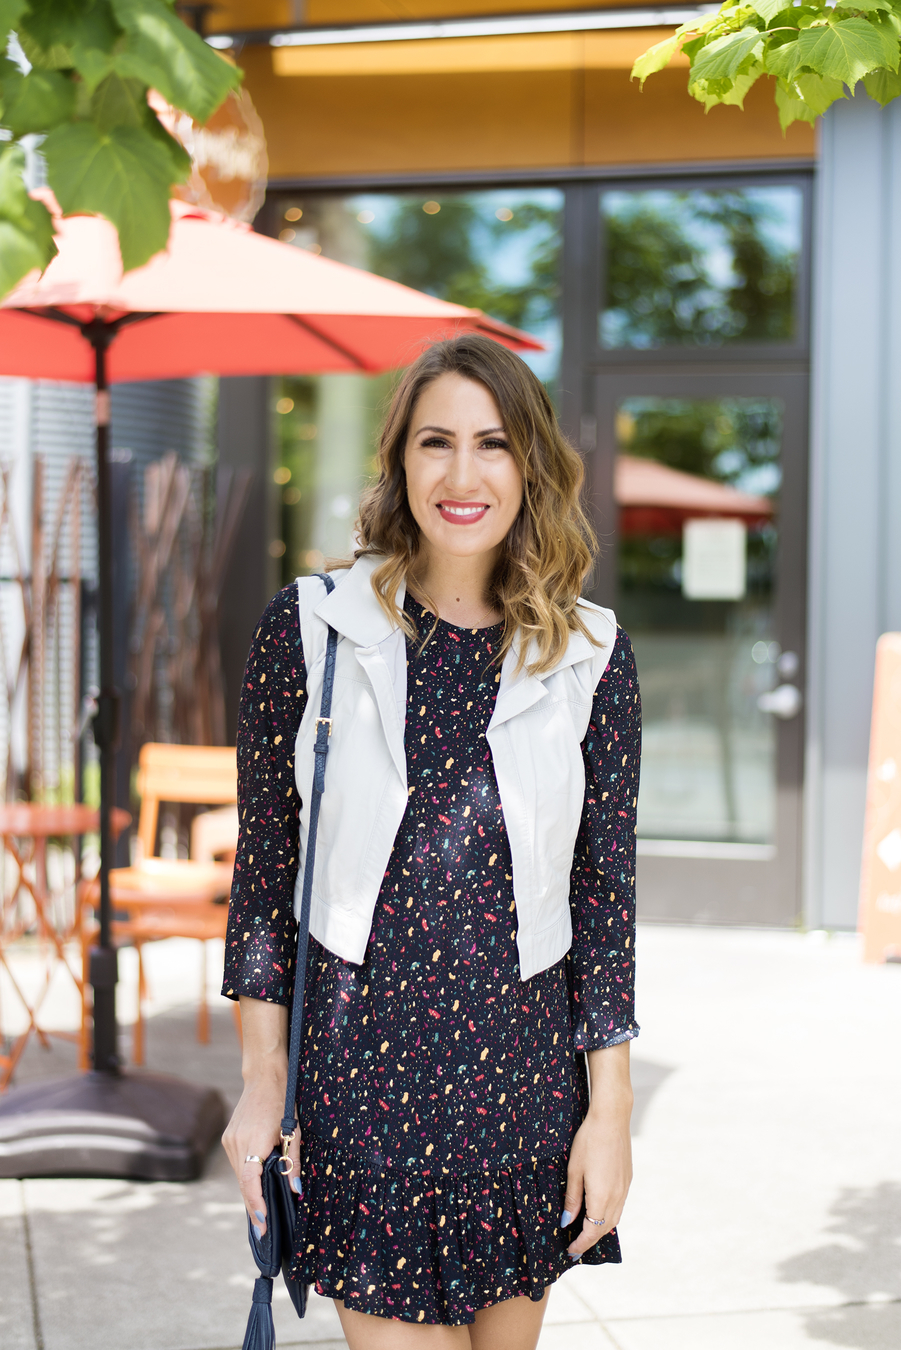 seattle fashion blogger, summer fashion, frequently asked questions